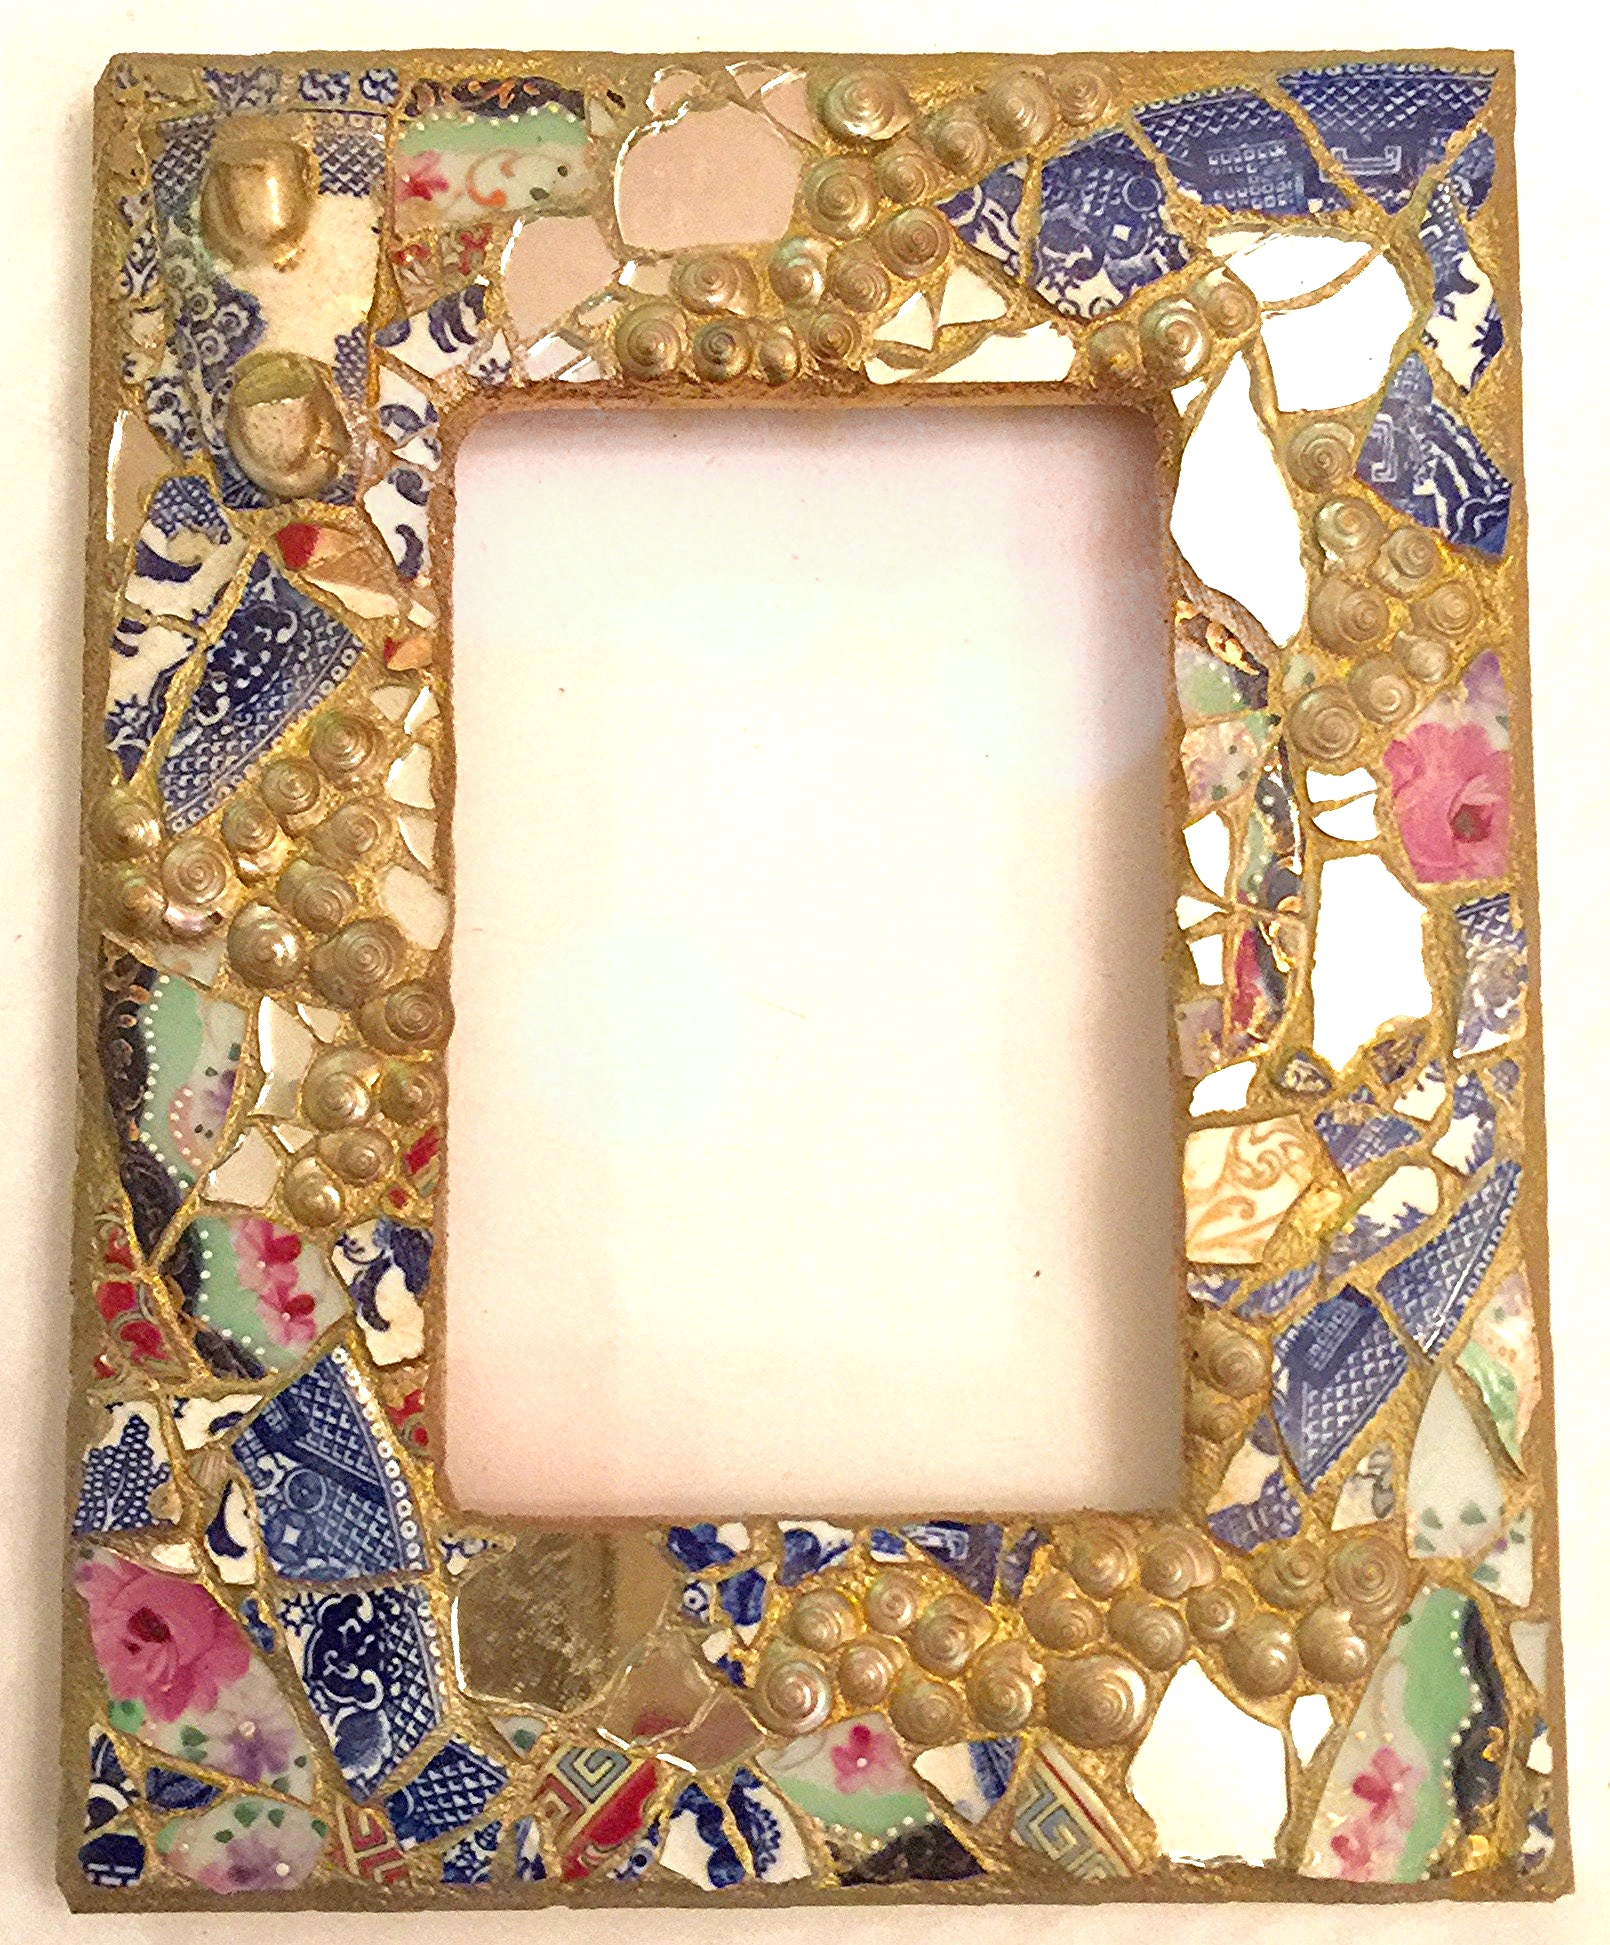 Mosaic Picture Frame 4x6 $65